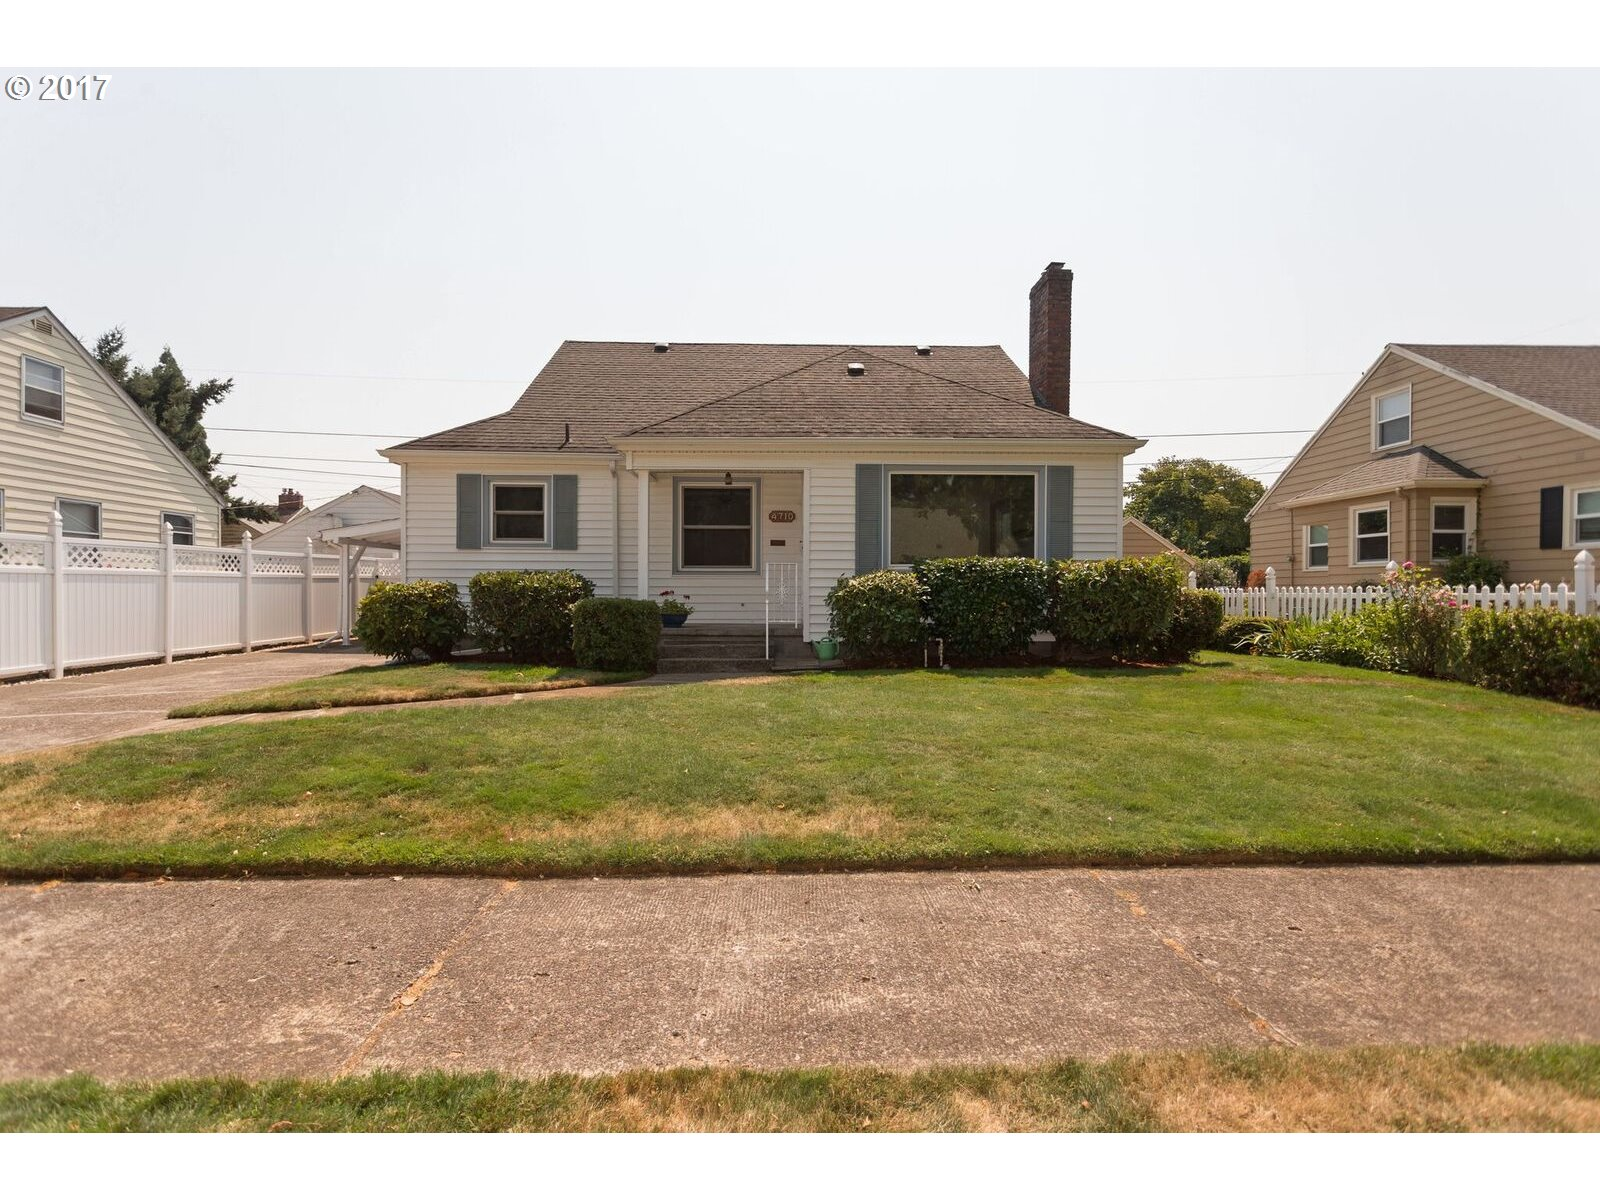 UNIVERSITY PARK Capecod.  Large, light and bright living room with gas fireplace and hardwood floors, formal dining room.  Roomy updated kitchen with eating area.  Finished attic (3rd bedroom) with plenty of storage. Family room in basement with gas stove, bonus room, HUGE laundry room and 2nd bathroom. Back yard has a  covered deck and patio with darling potting room attached to garage plus garden area. A/C and sprinkler system!